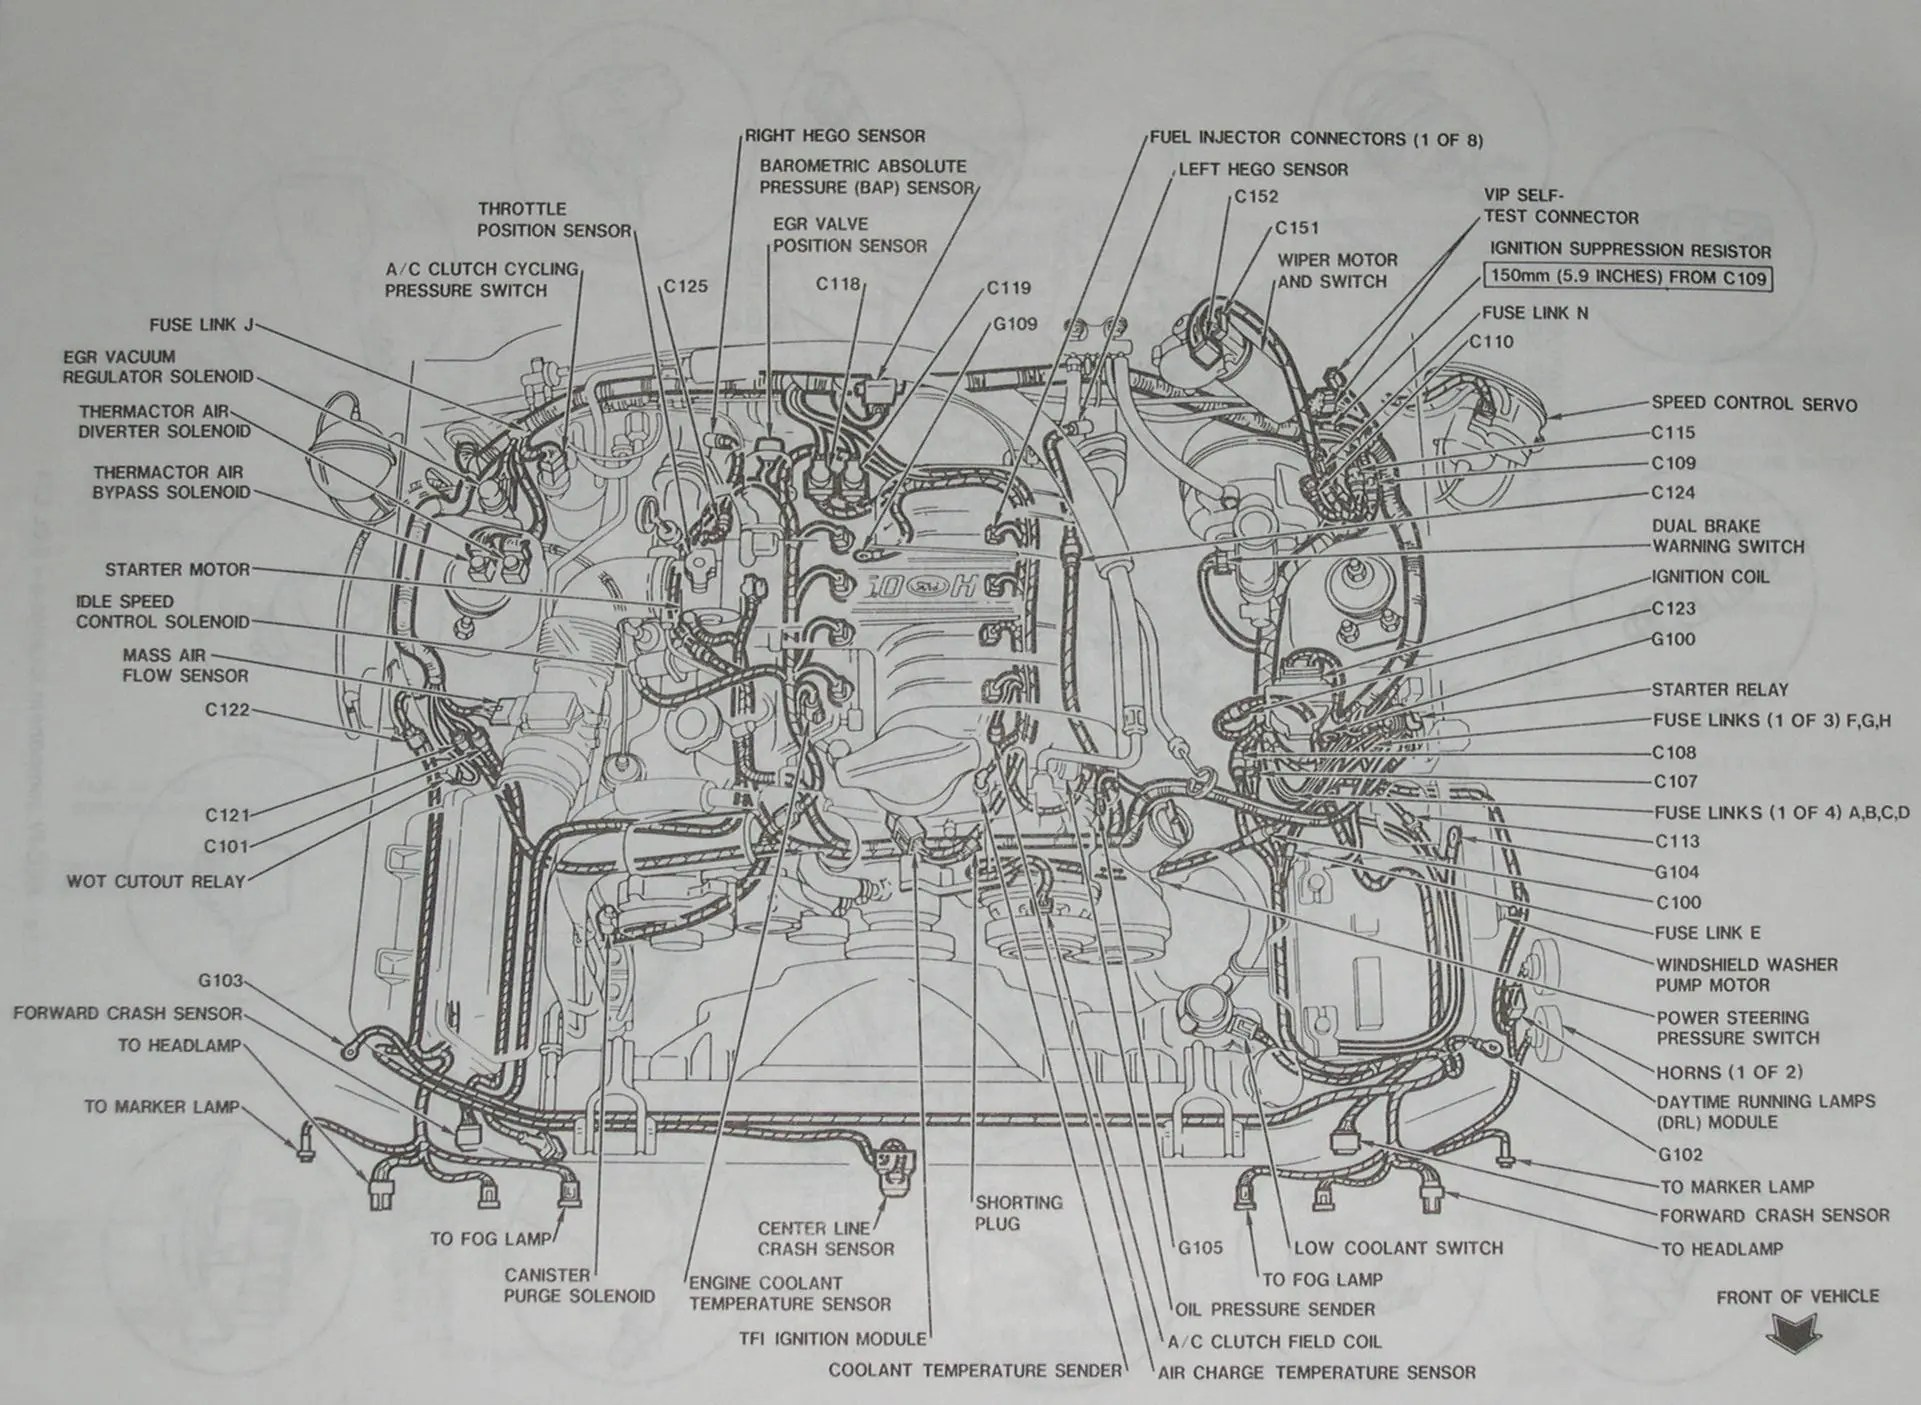 2012 Mustang Engine Diagram 94 95 50 Detailed Layout